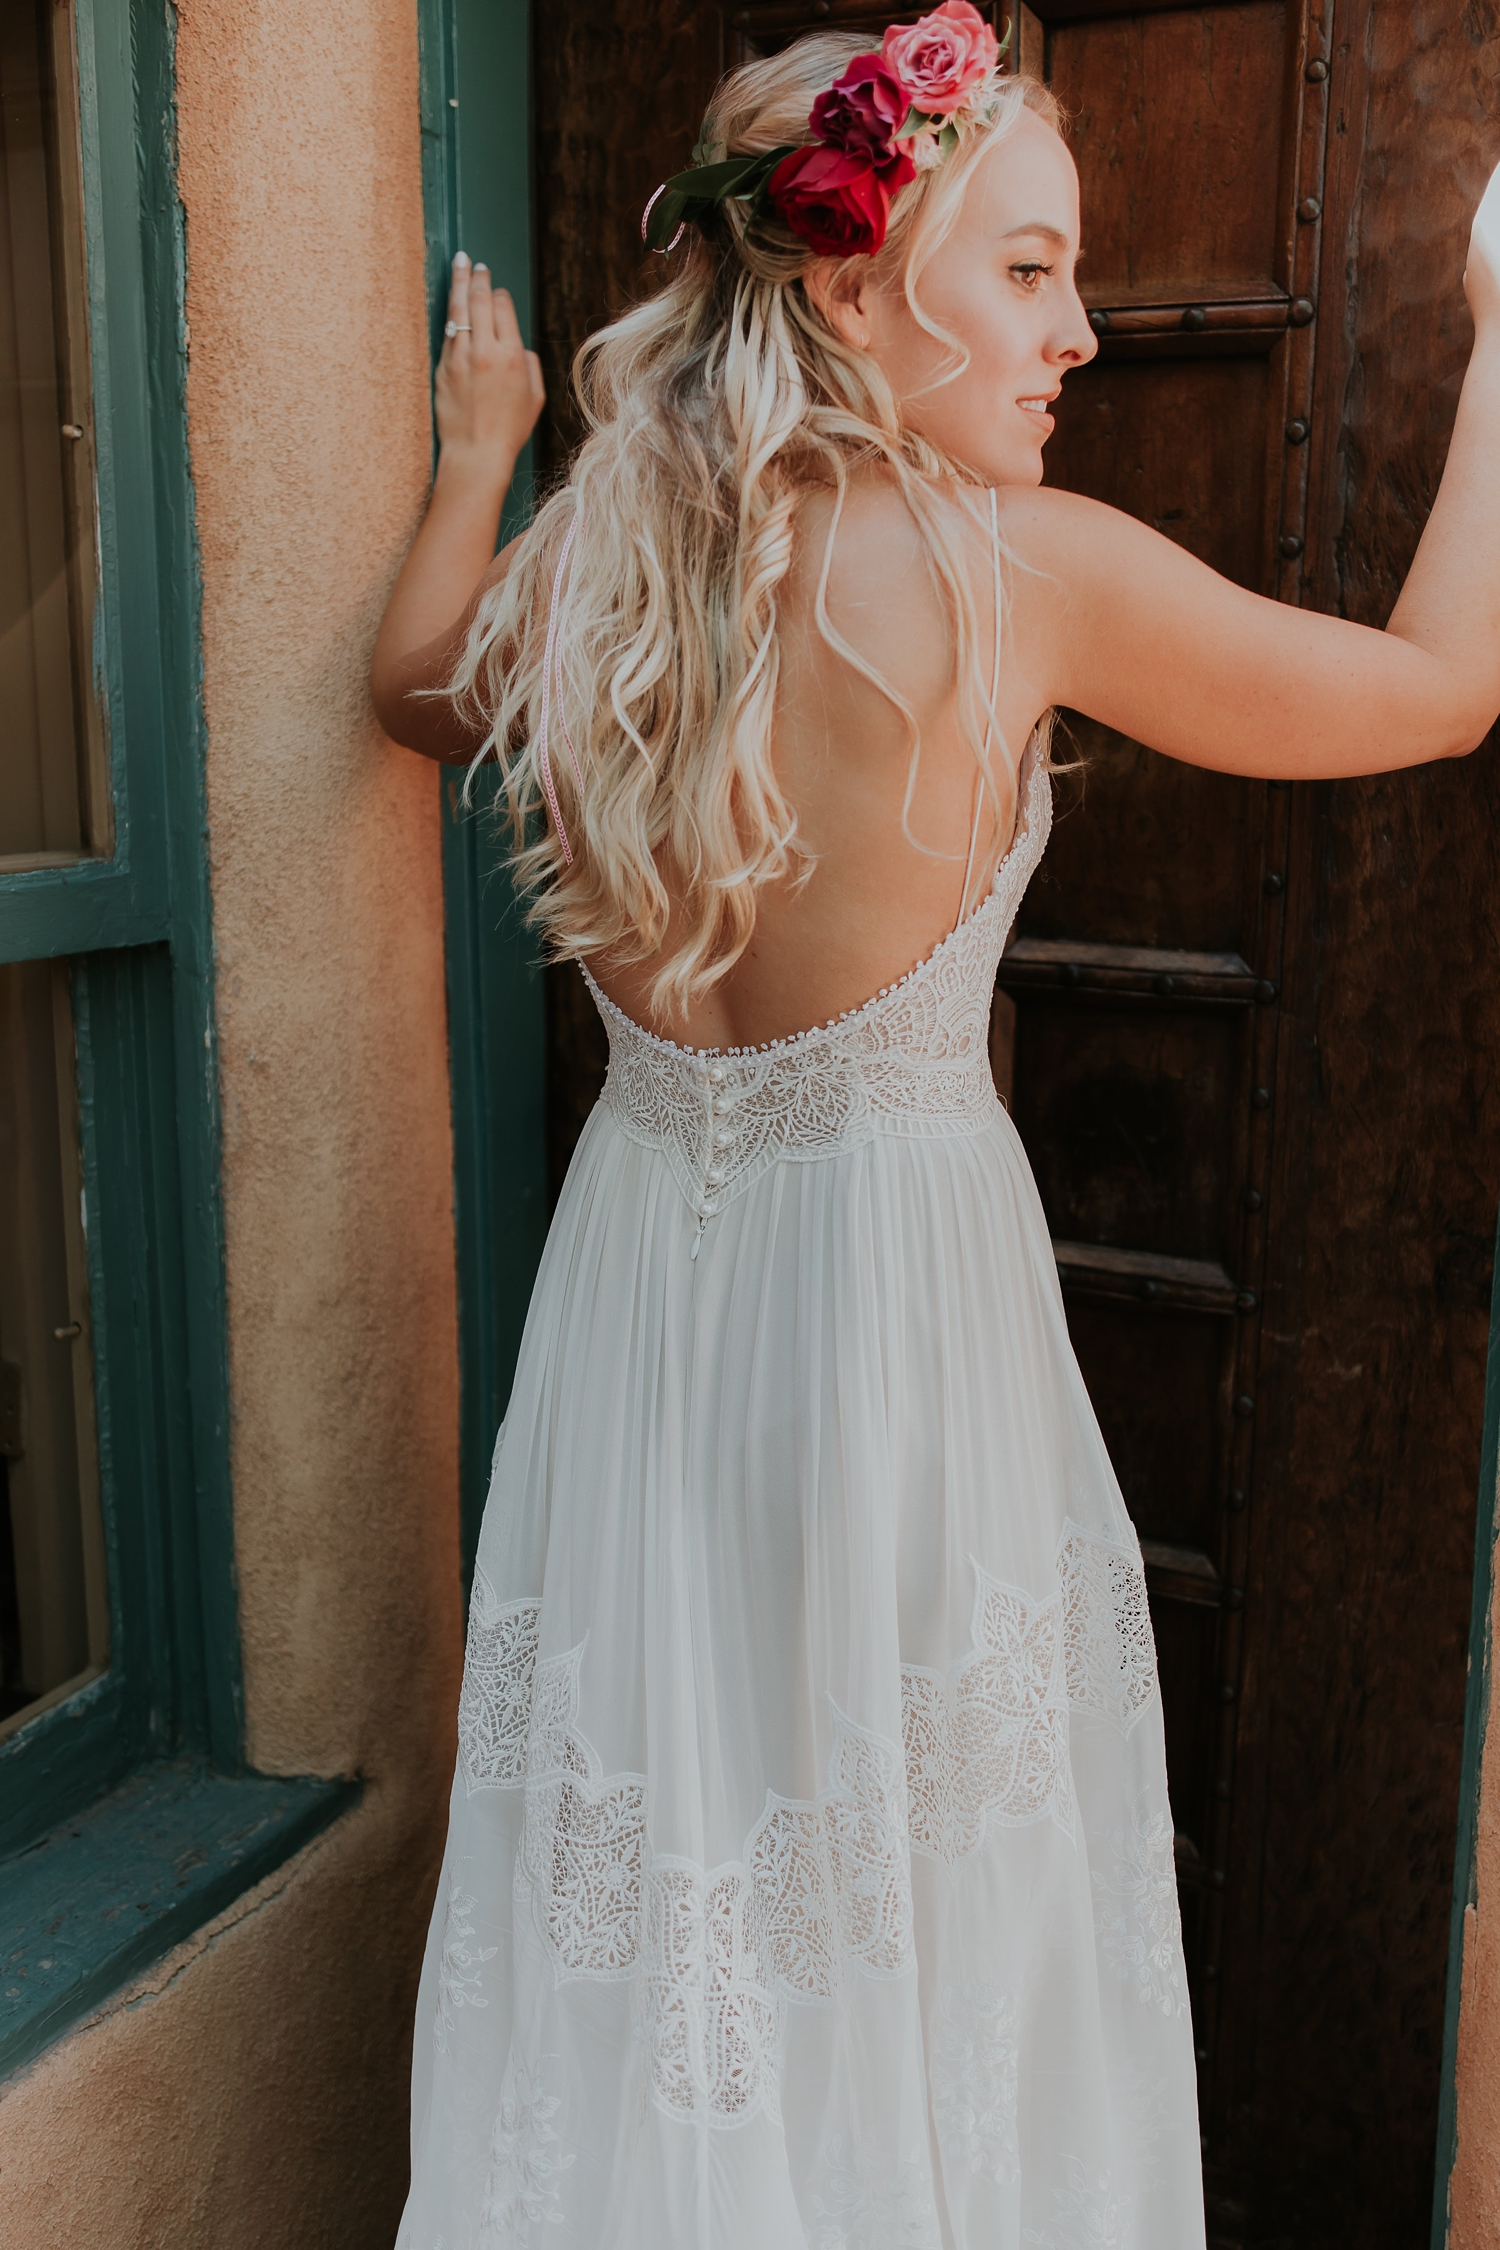 Alicia+lucia+photography+-+albuquerque+wedding+photographer+-+santa+fe+wedding+photography+-+new+mexico+wedding+photographer+-+summer+wedding+gowns+-+summer+wedding+style_0028.jpg